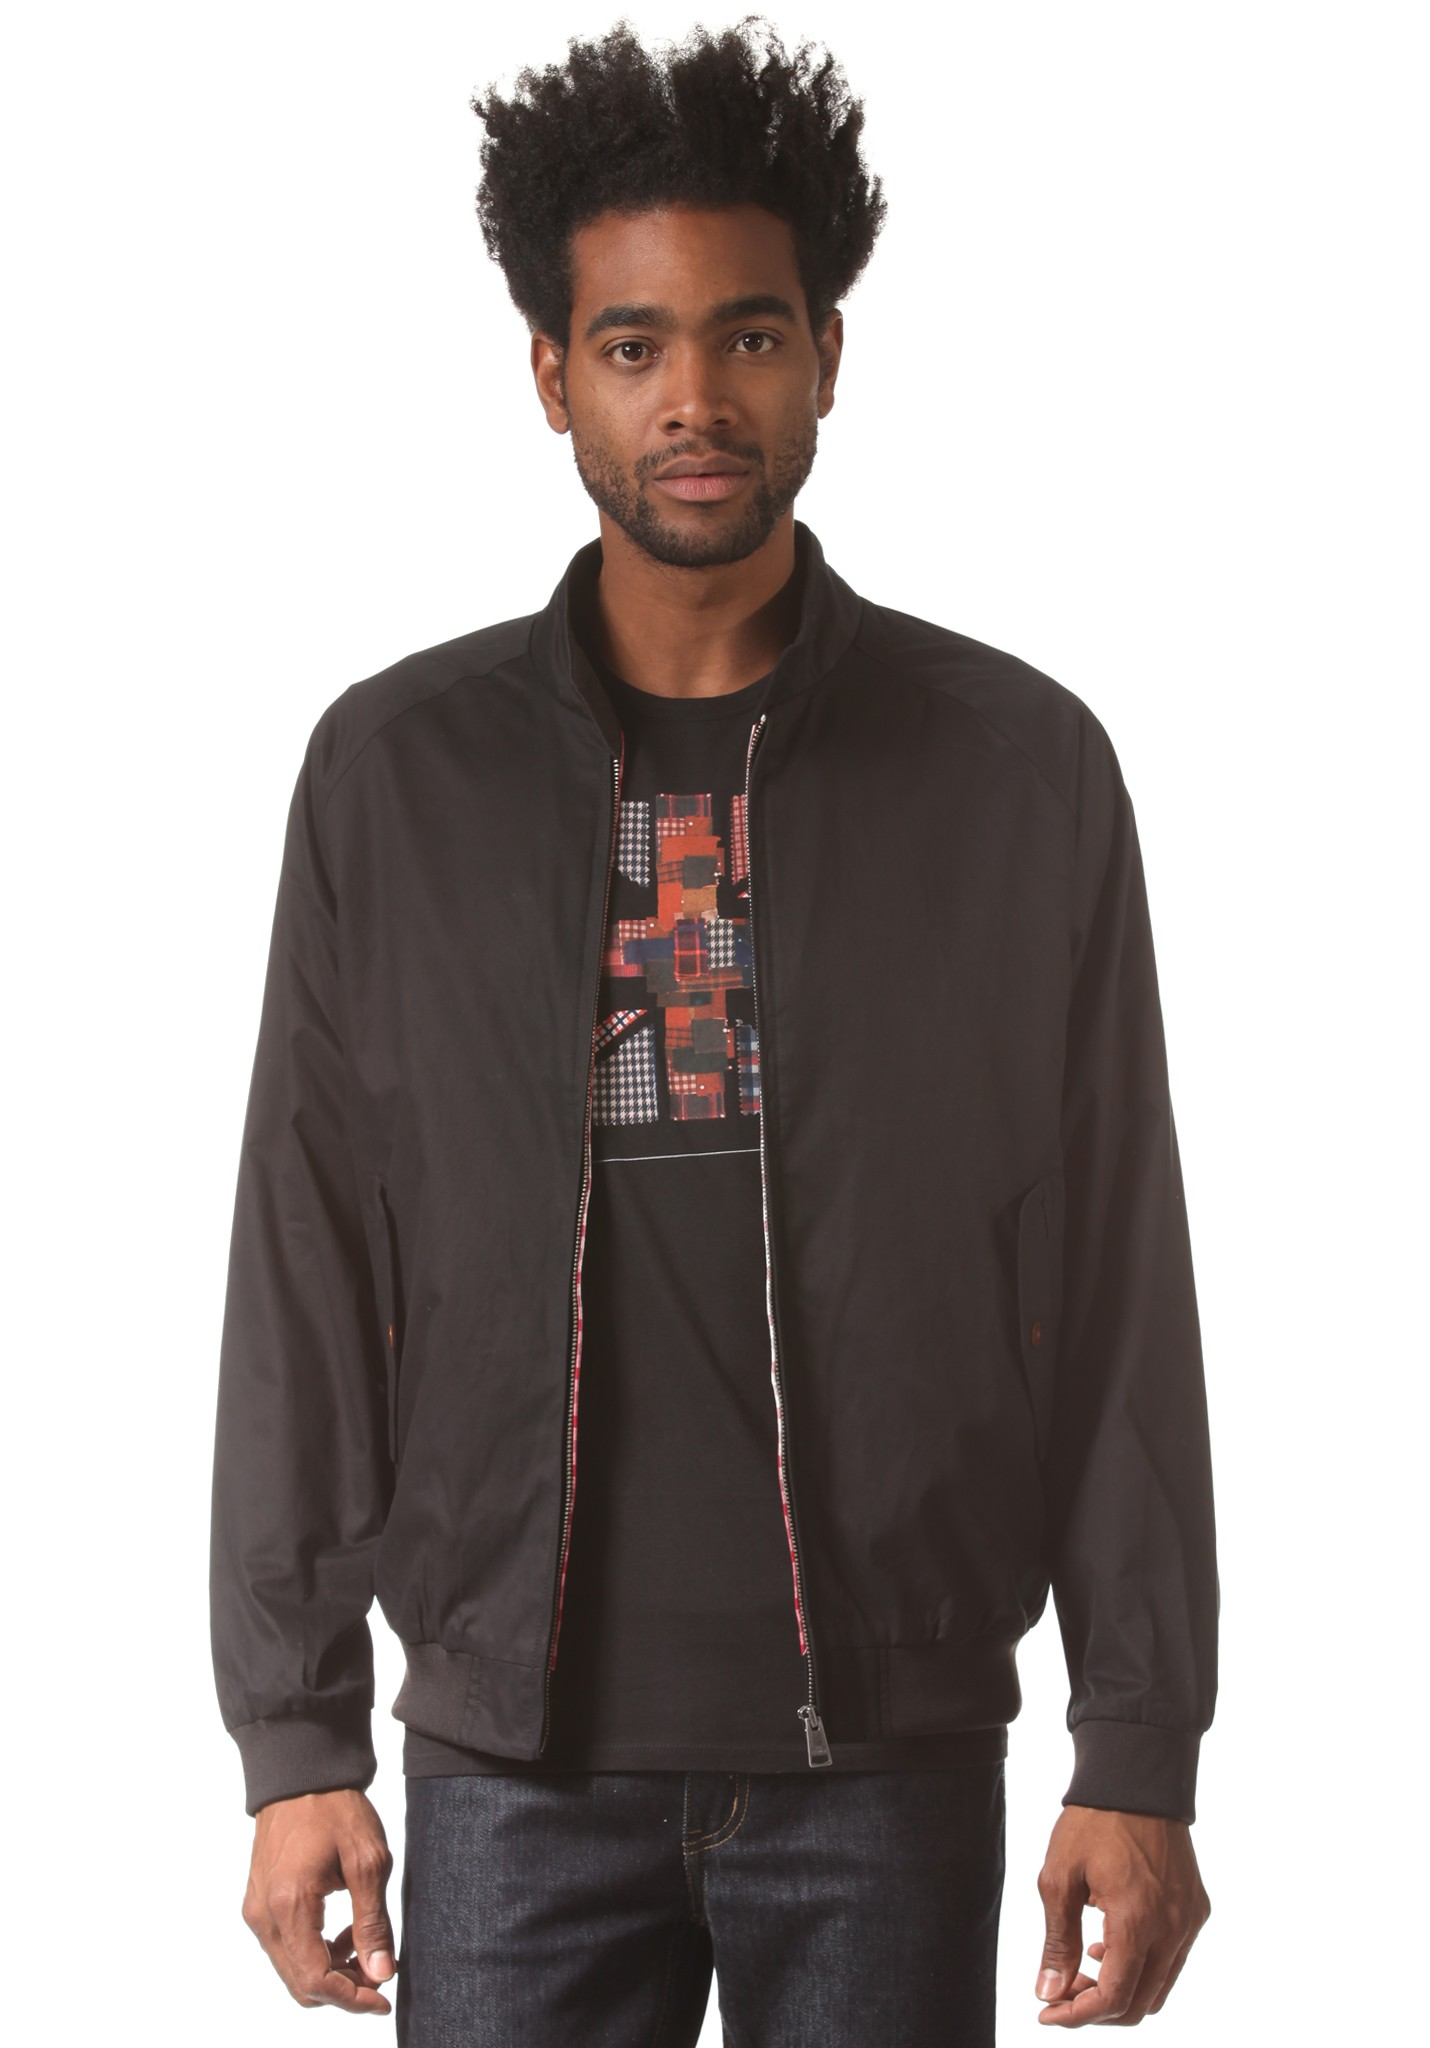 neu ben sherman cotton harrington herren jacke ebay. Black Bedroom Furniture Sets. Home Design Ideas